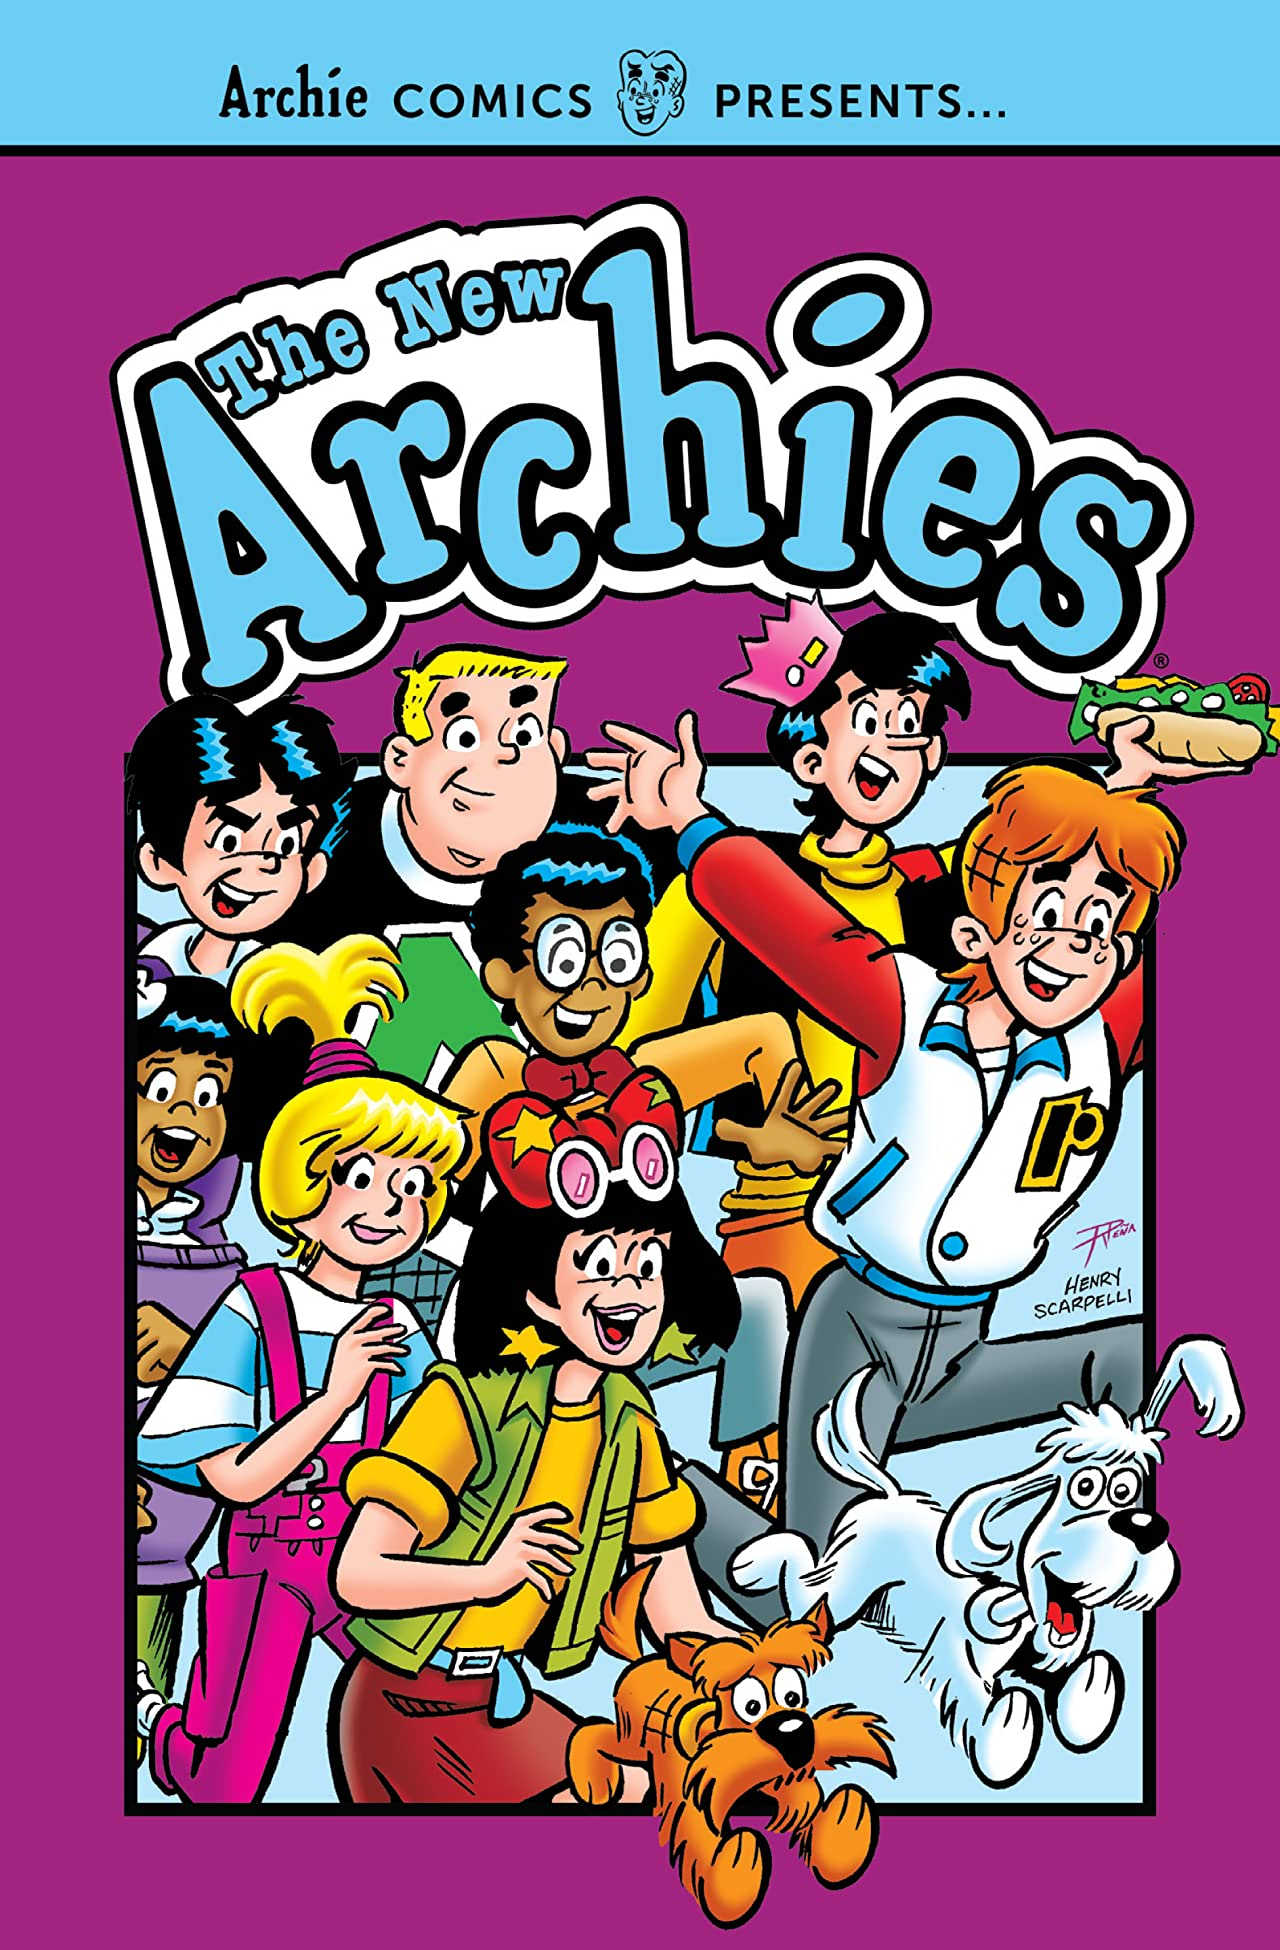 The New Archies